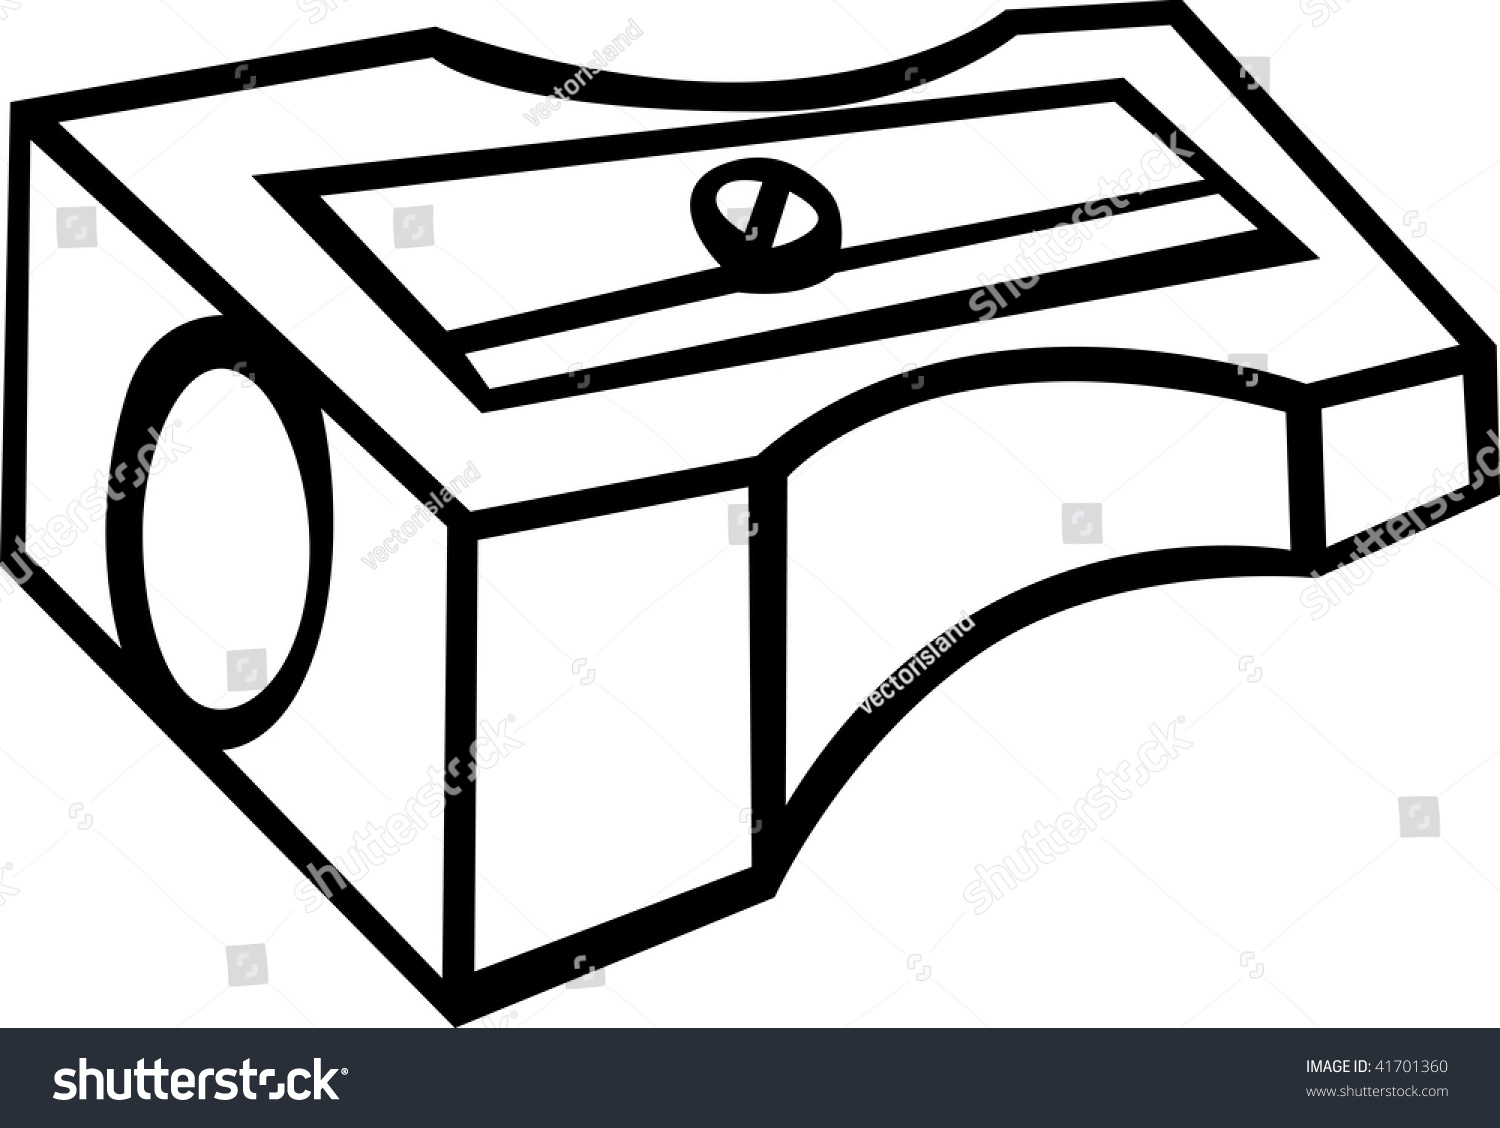 Pencil sharpener clipart black and white how to format for Pencil sharpener coloring page